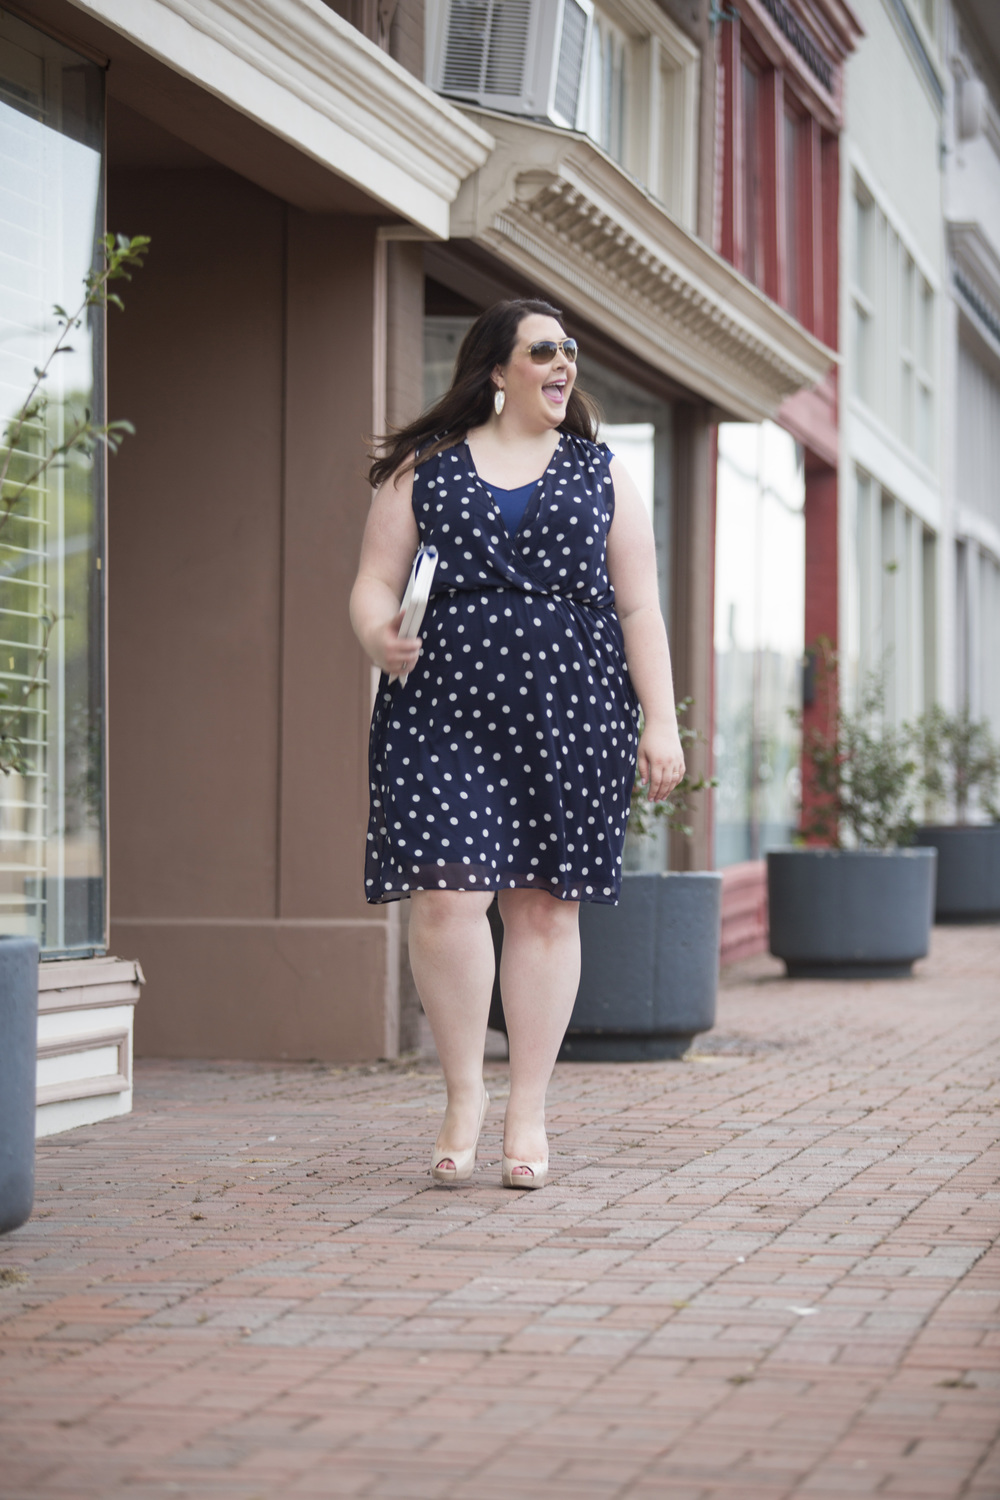 Plus Size Street Style Navy Polka Dot Dress Wedding Guest 9.jpg